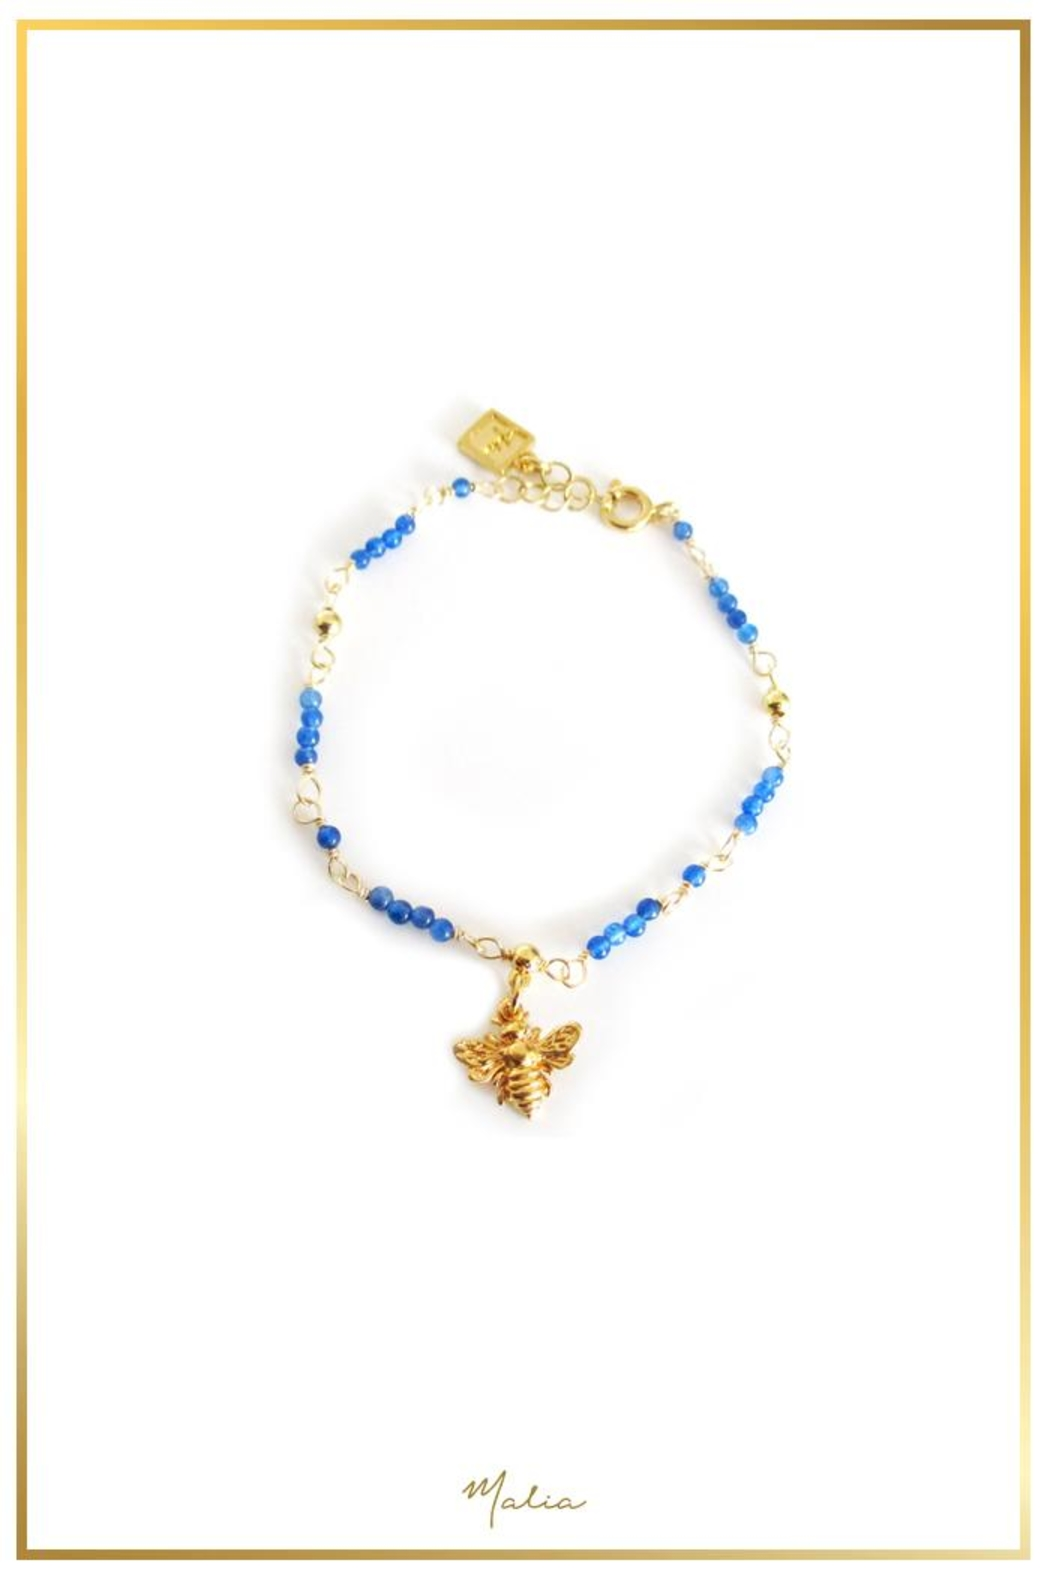 Malia Jewelry Blue-Agate Bee Bracelet - Main Image